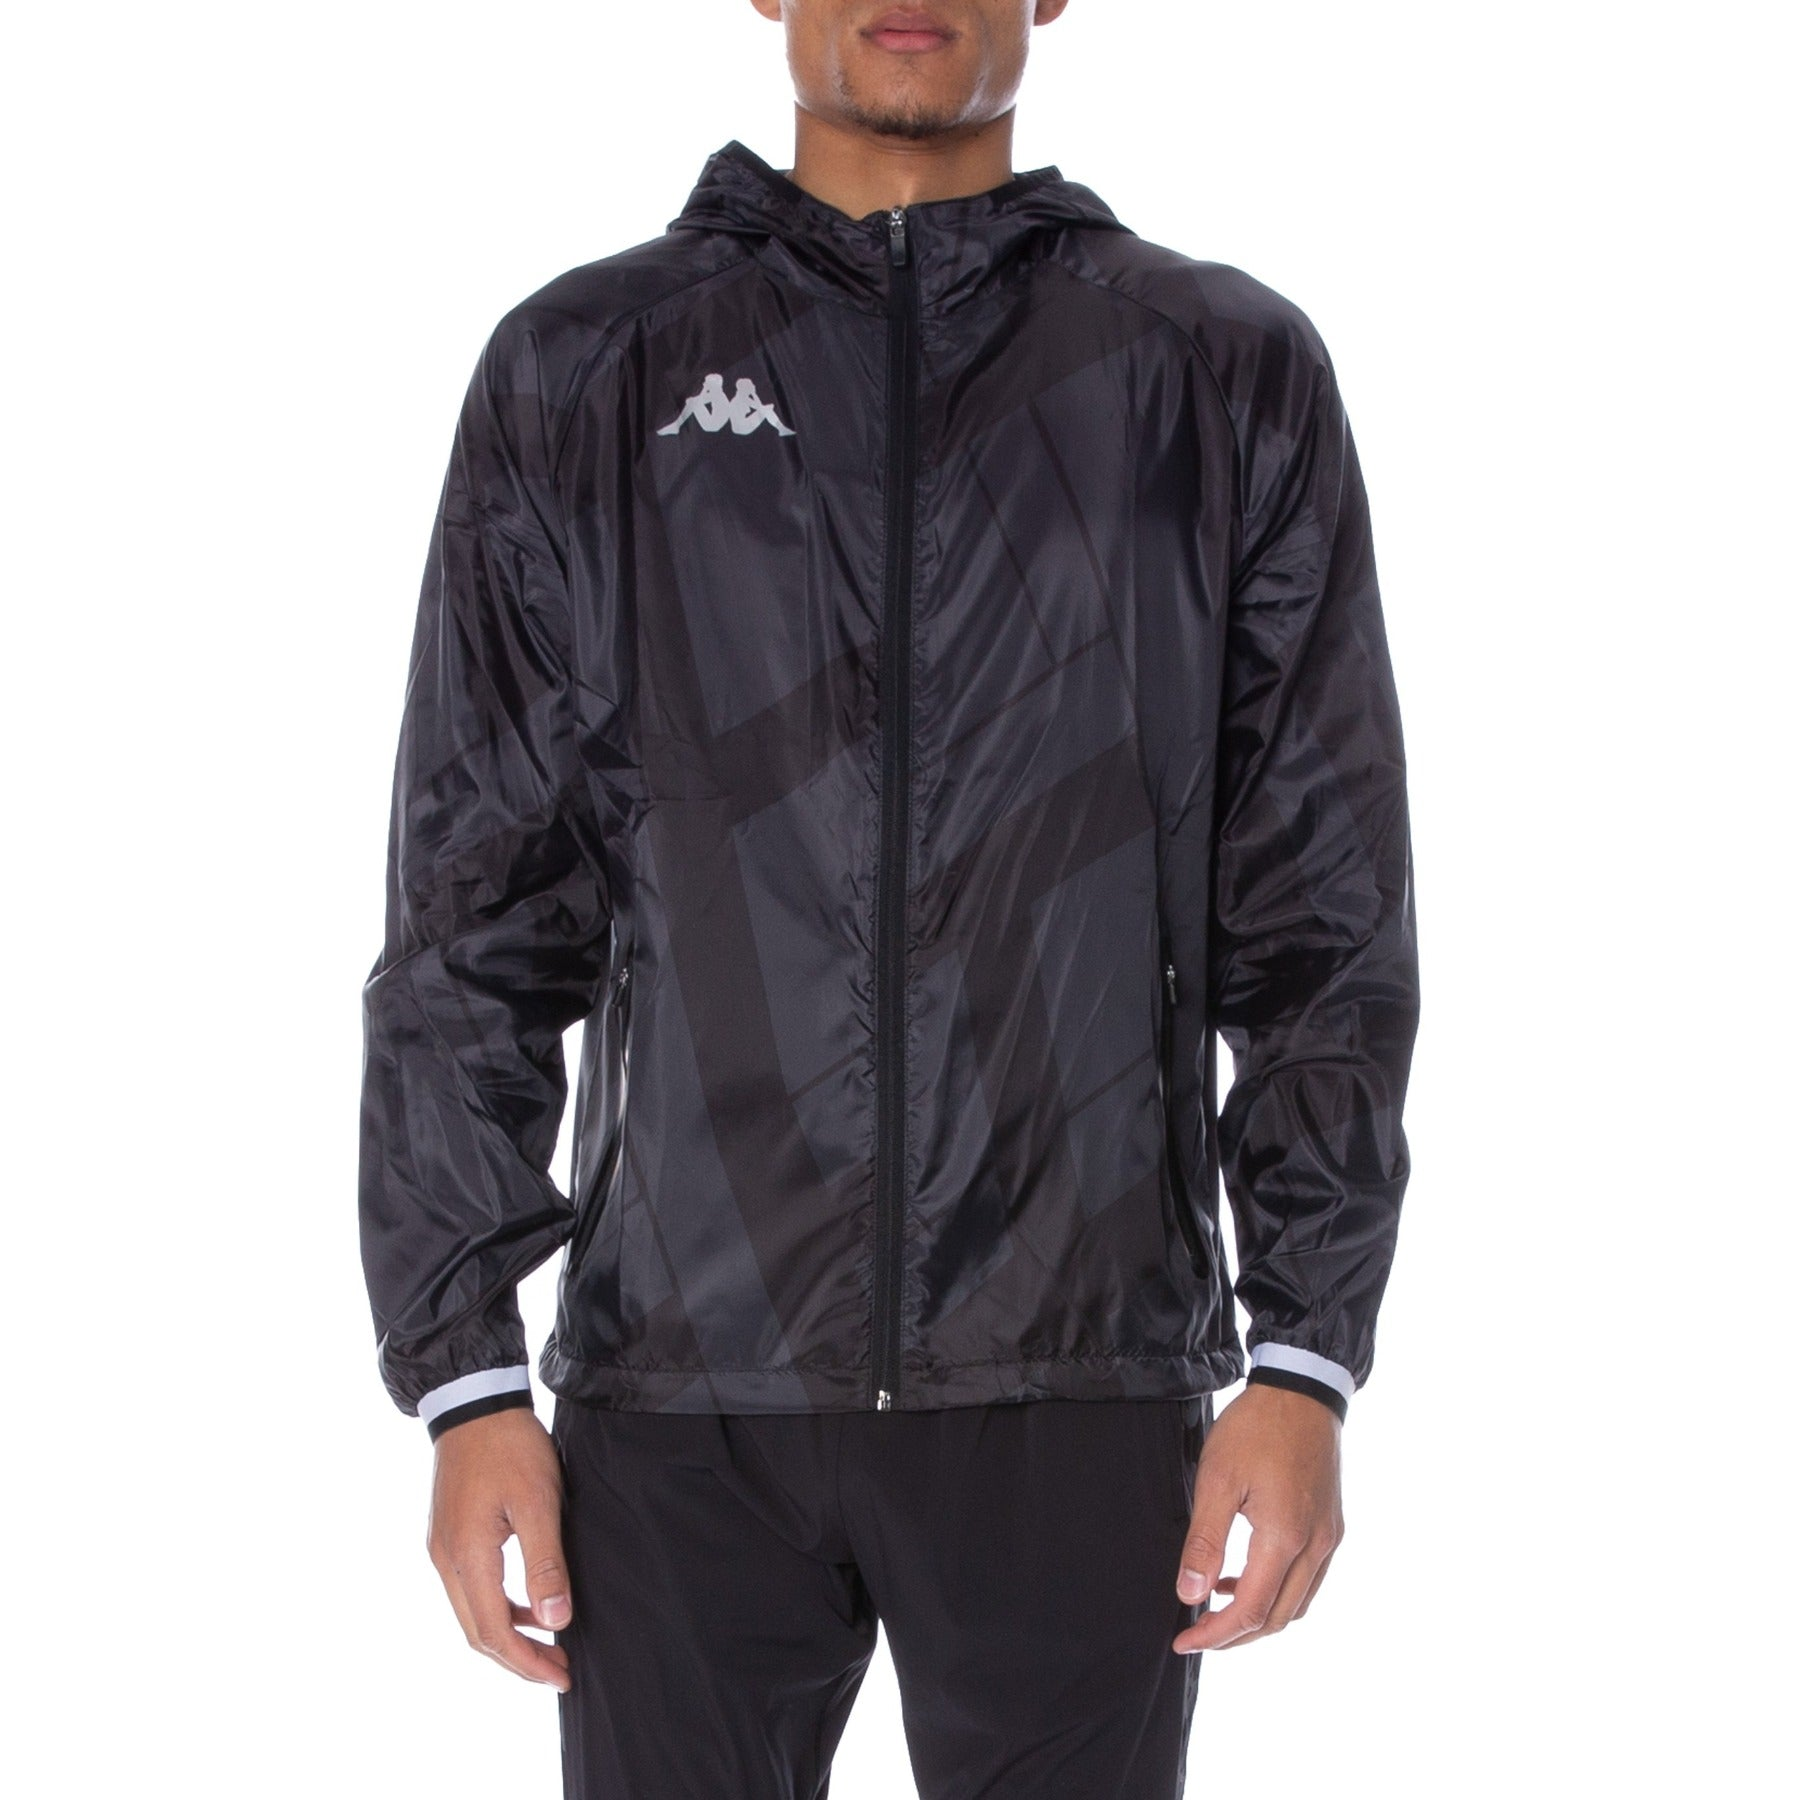 Kombat Bimy Active Jacket